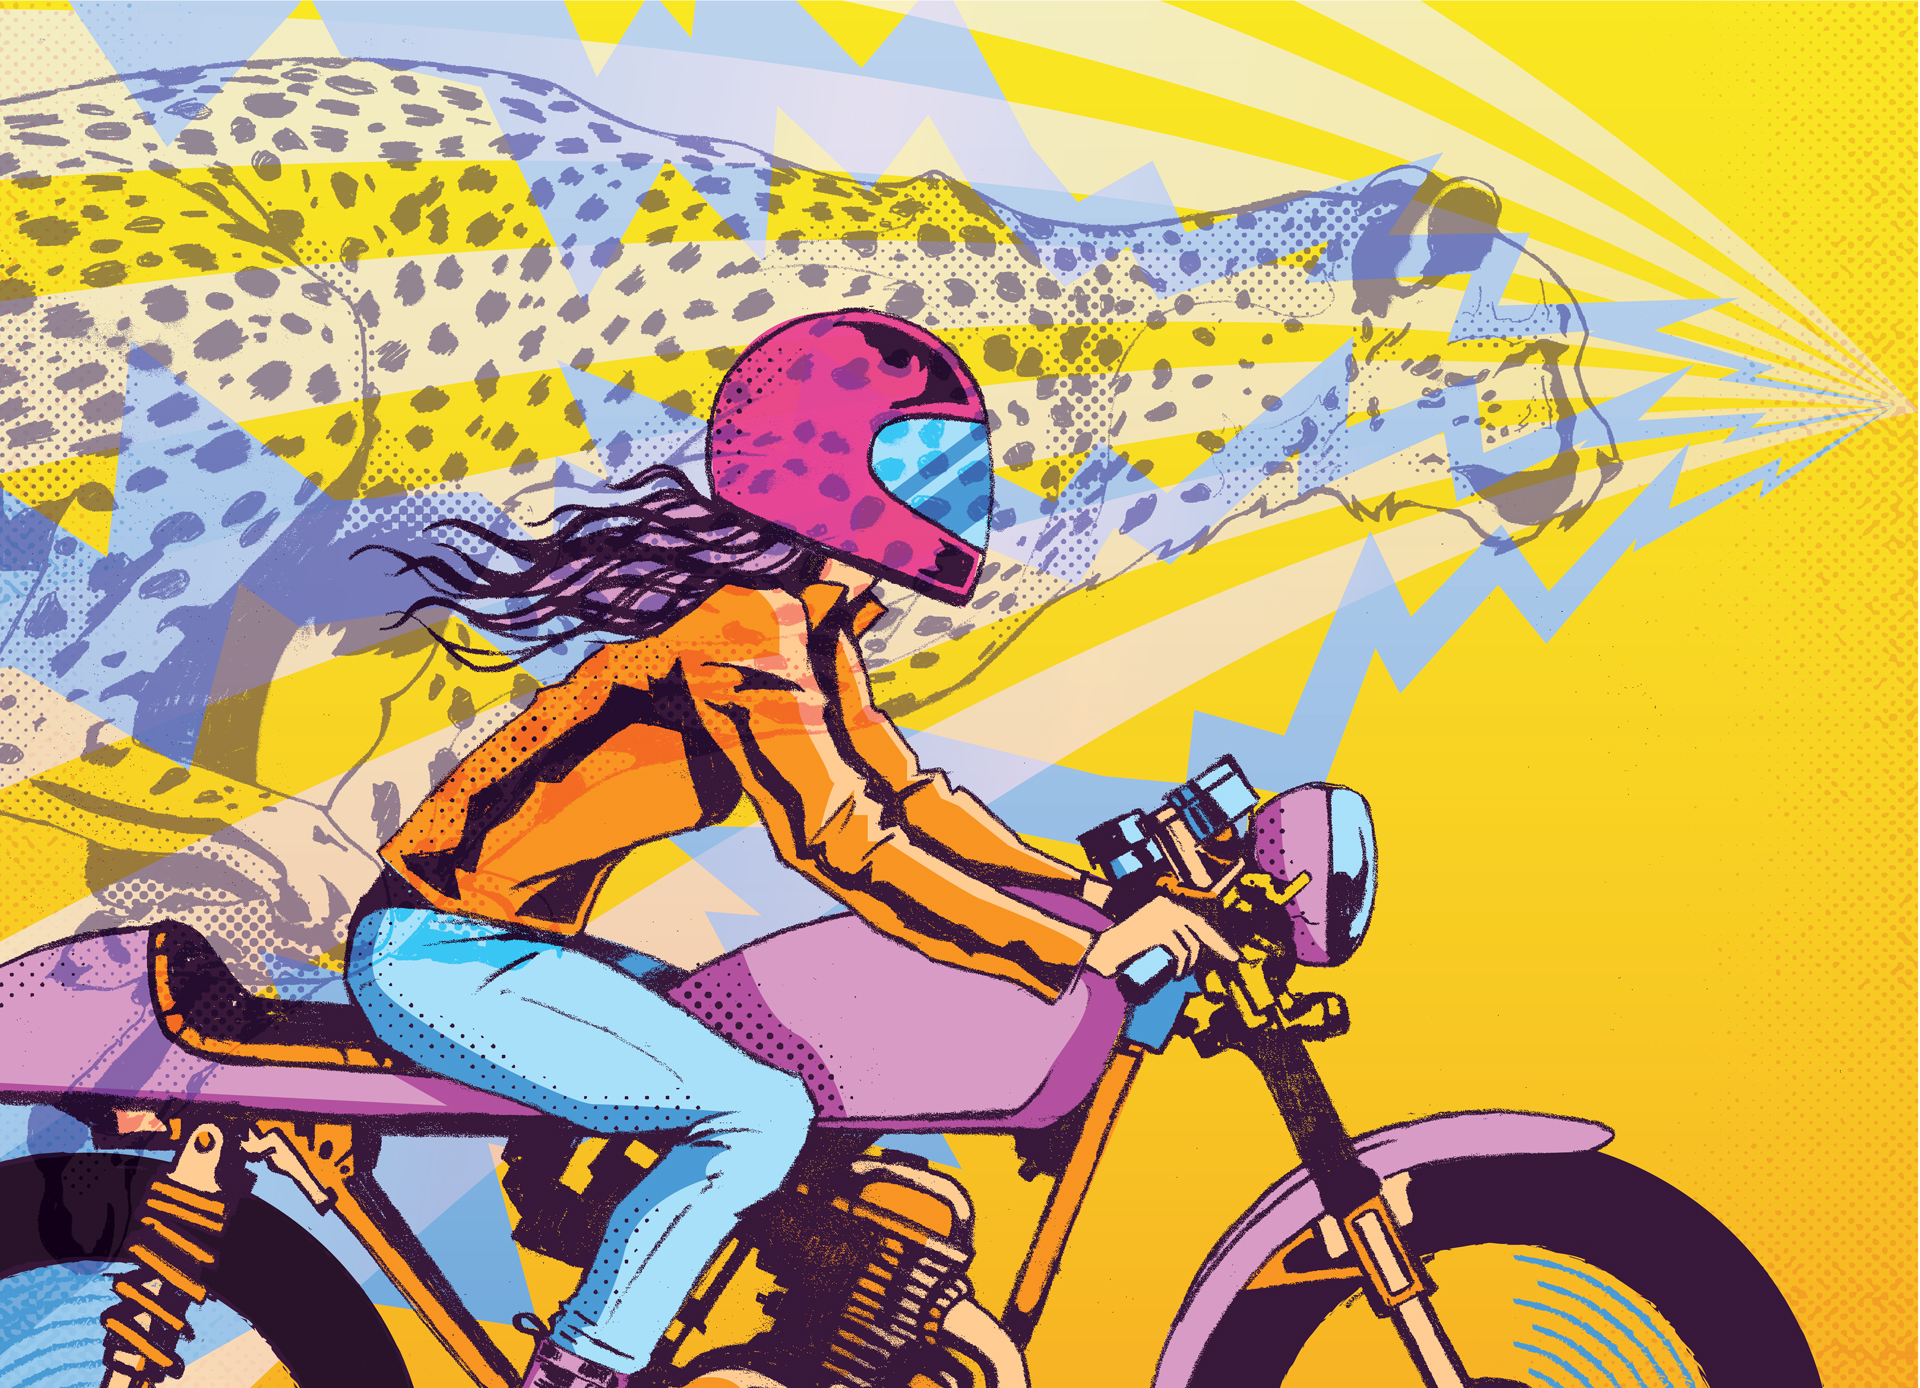 ilustration motorcycle cheetah